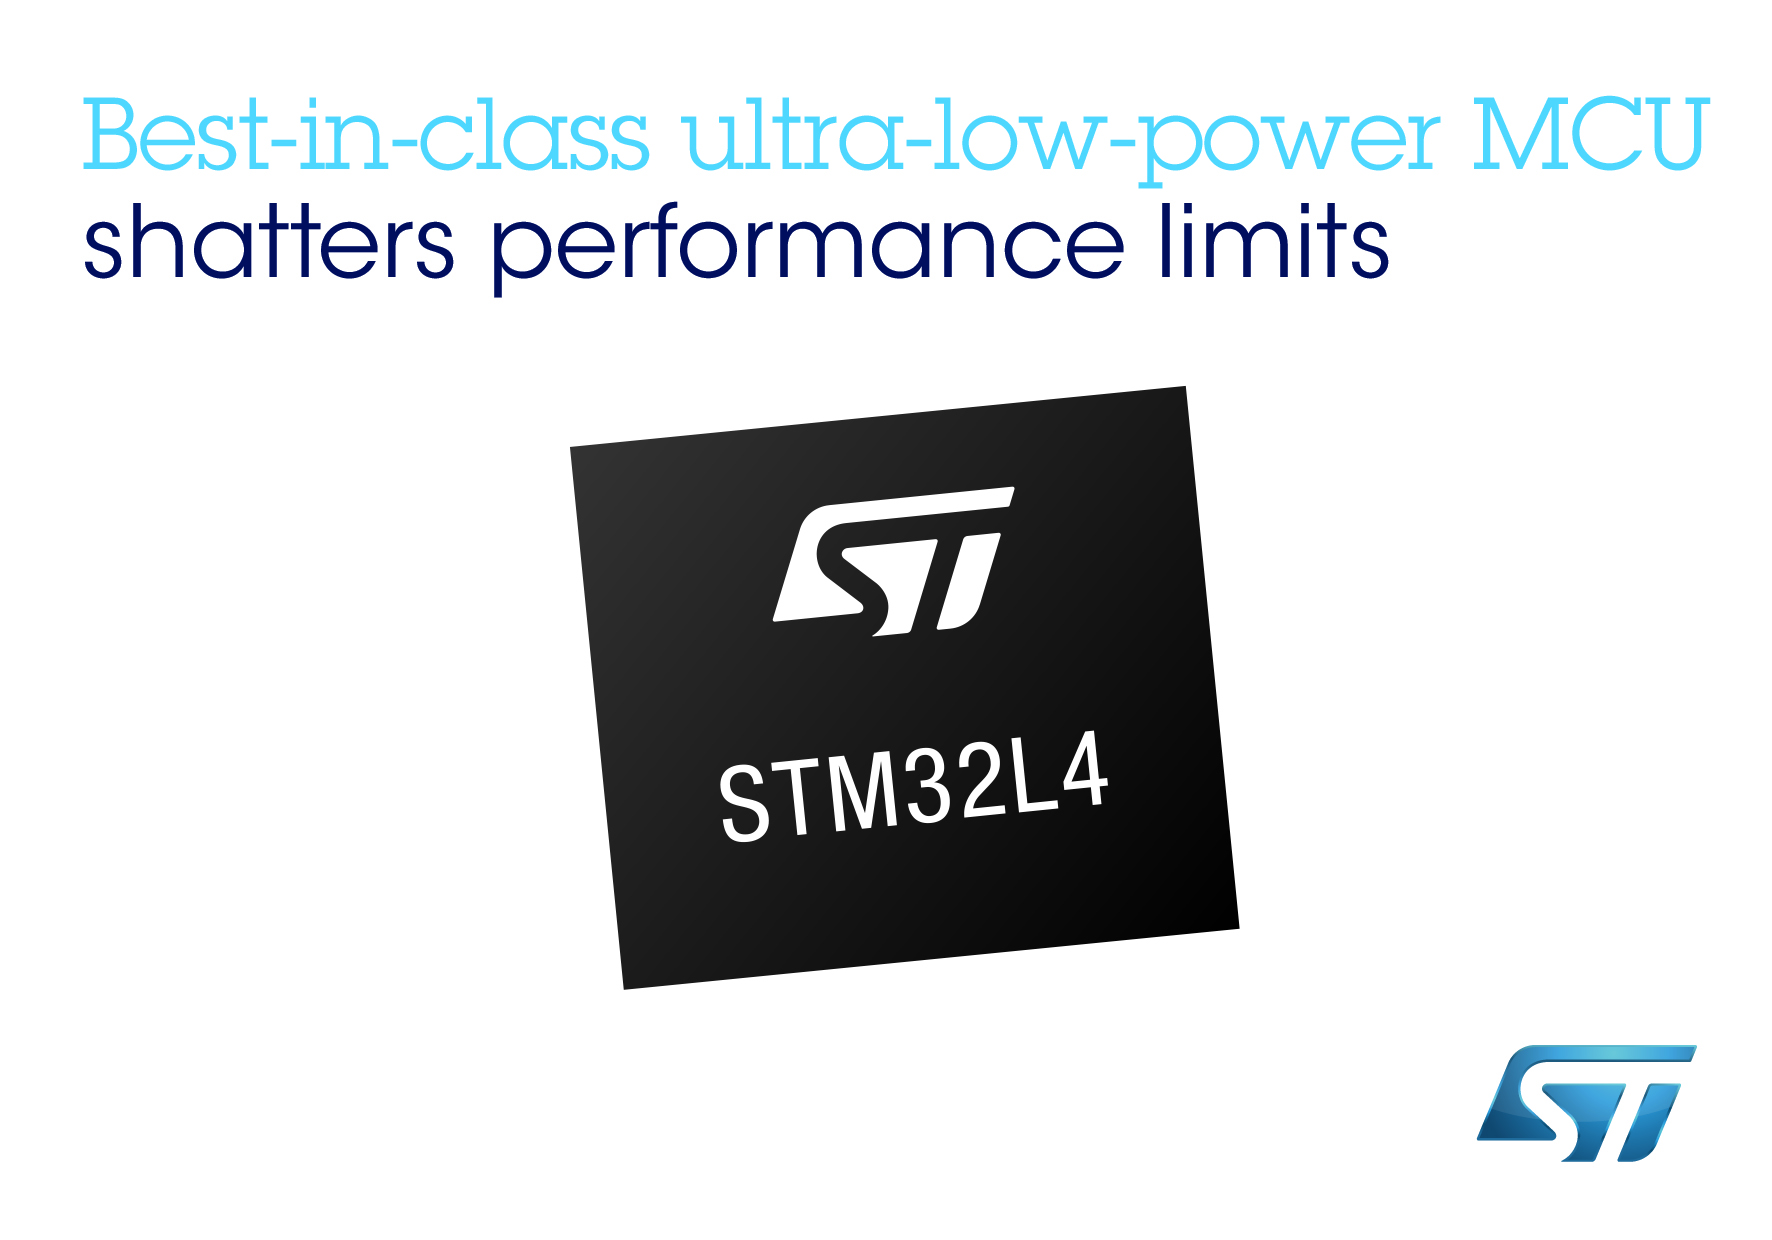 STMicro's STM32L4 microcontrollers overcome performance limitations for ultra-low-power apps